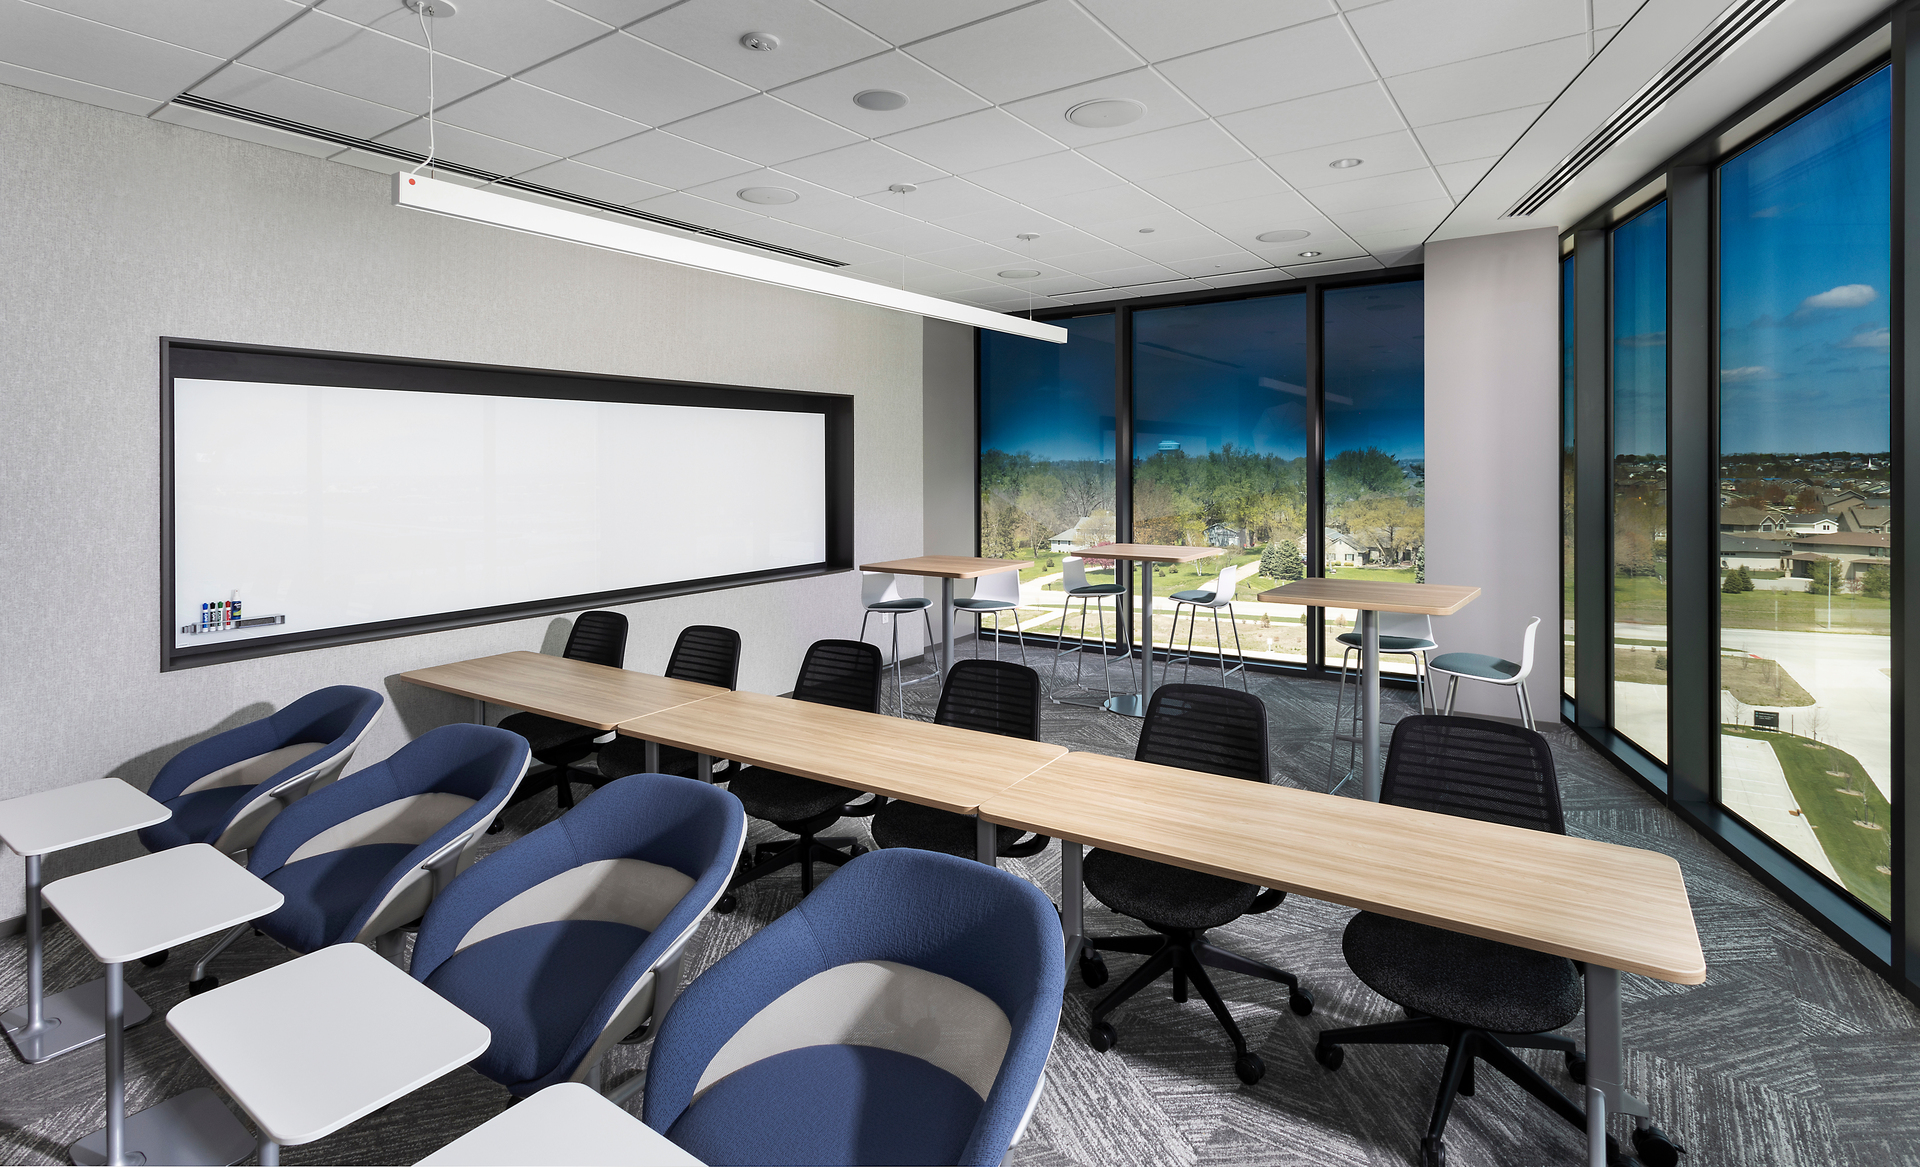 Sammons Financial Group leadership knew that contemporary and comfortable offices are high on employees' wish lists, and help attract and retain strong candidates.